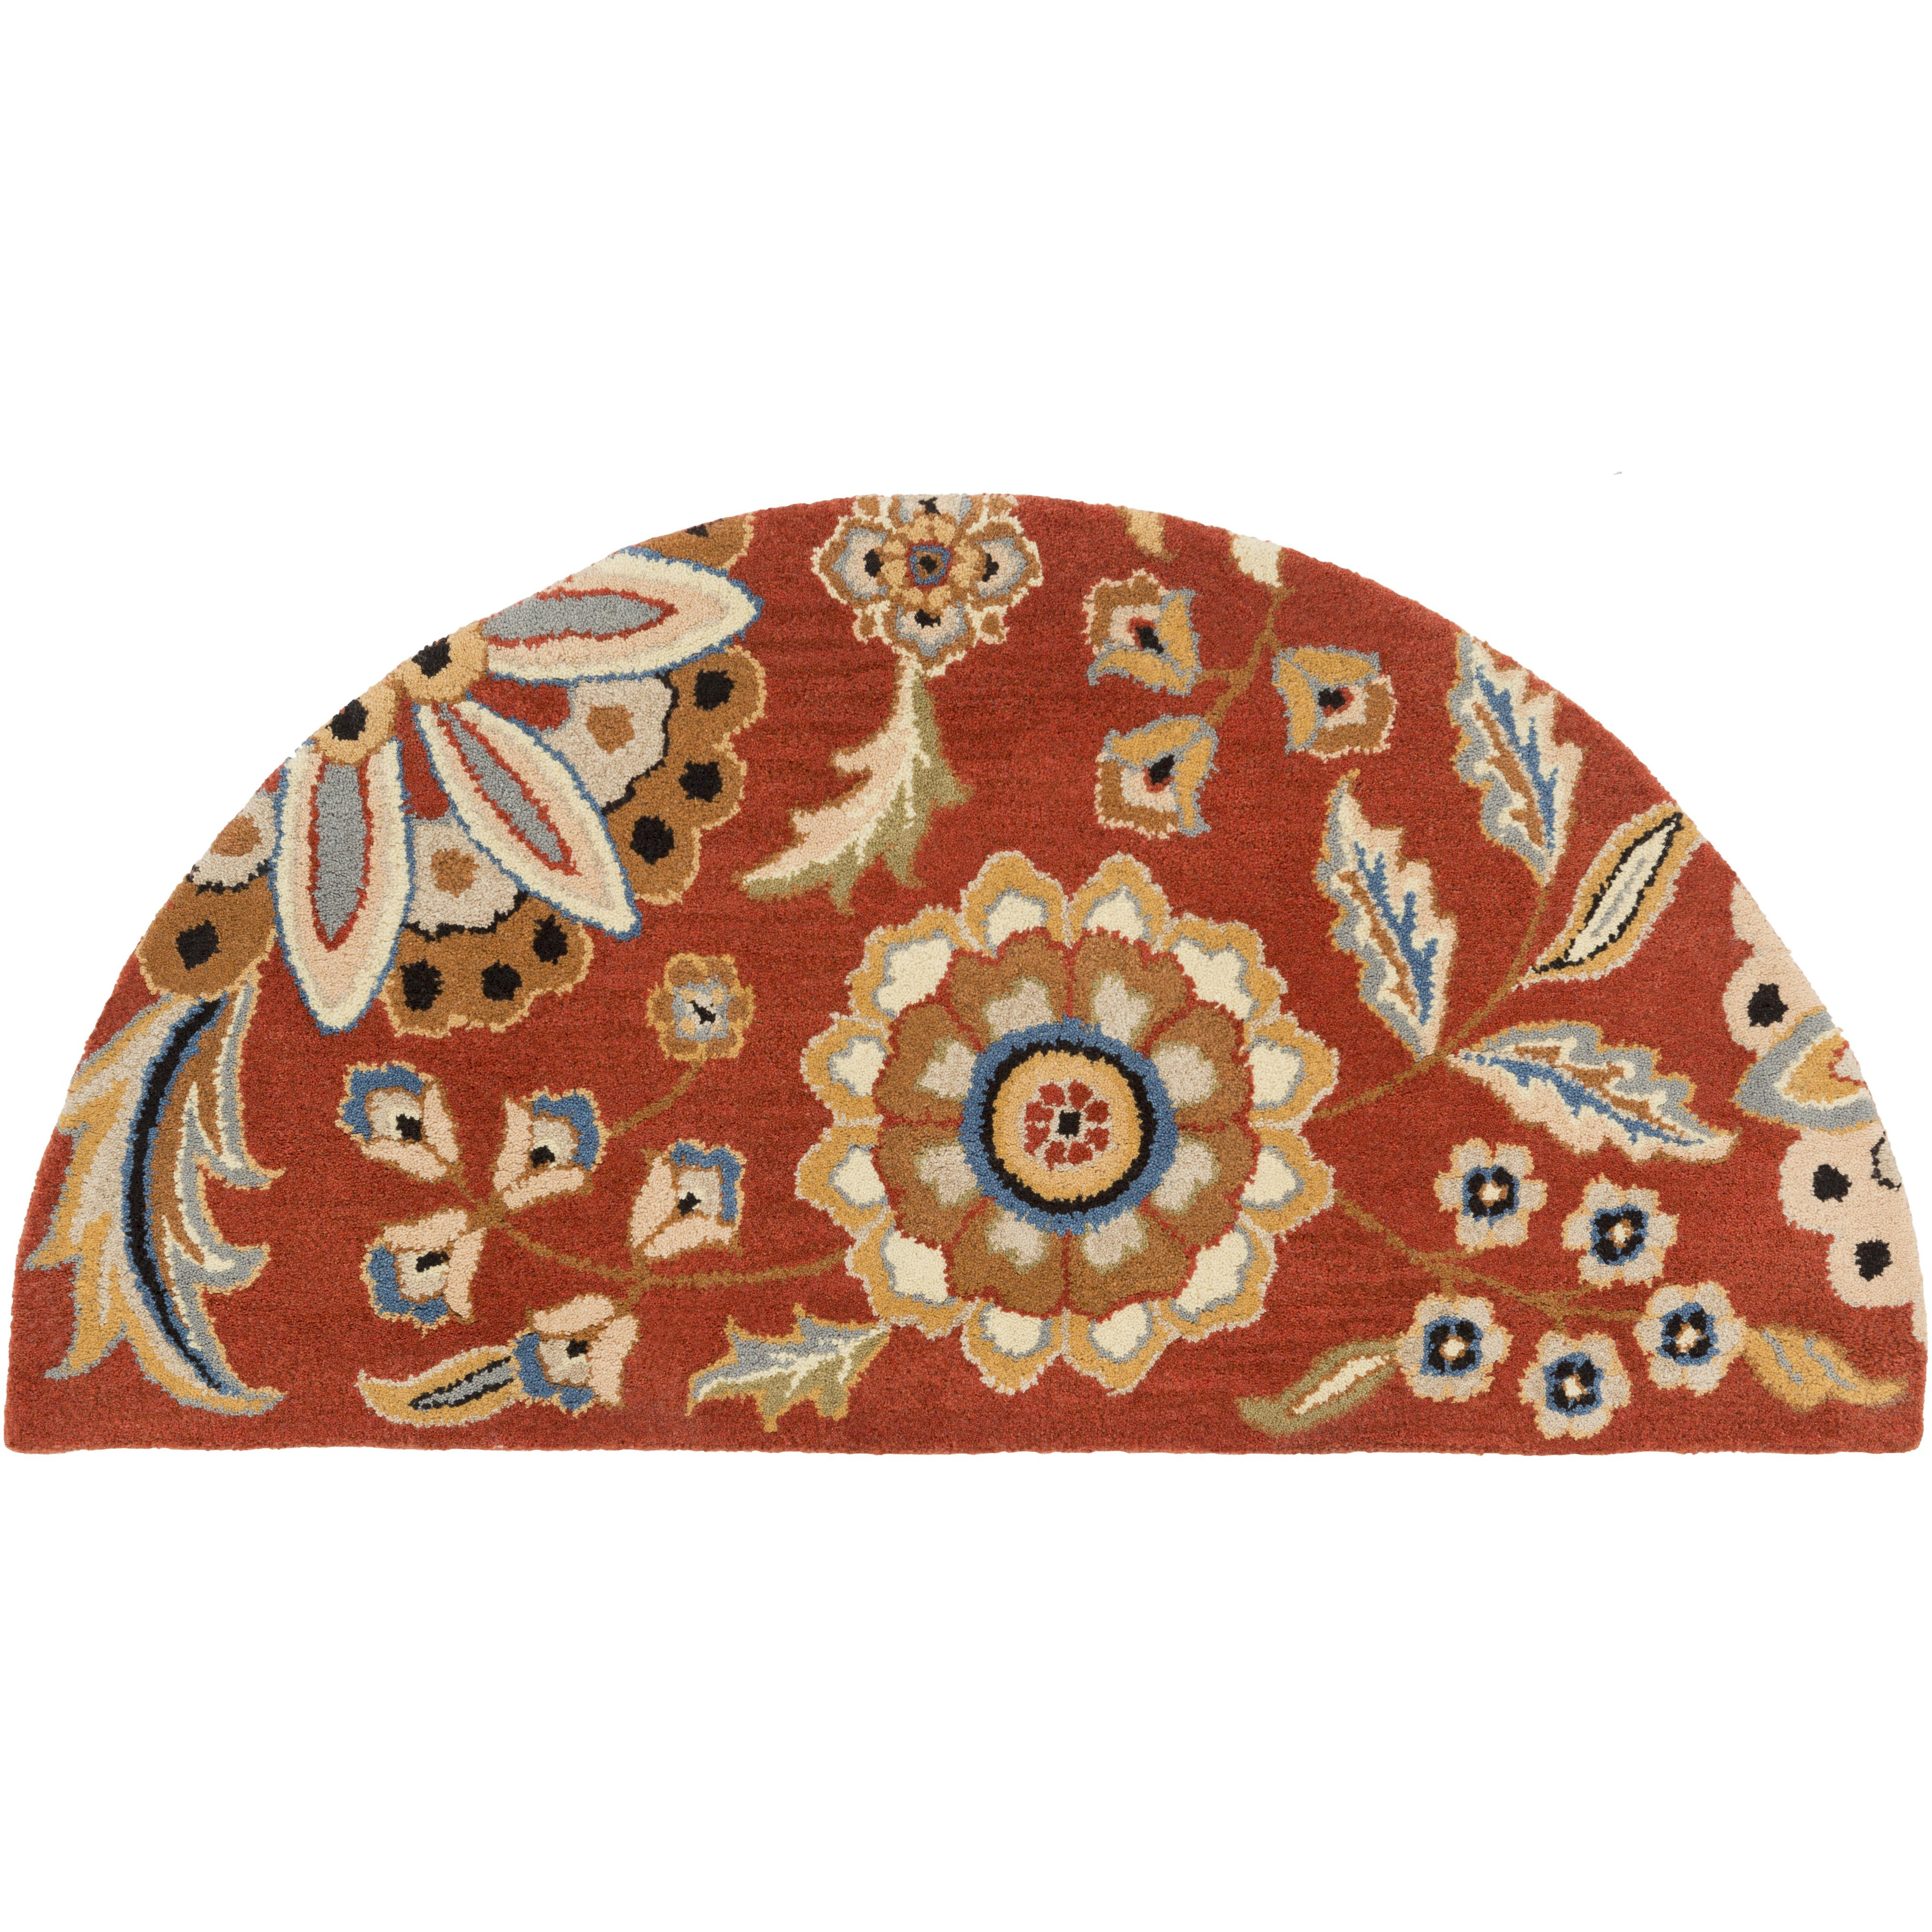 Surya Rugs Athena 2' x 4' Hearth - Item Number: ATH5126-24HM